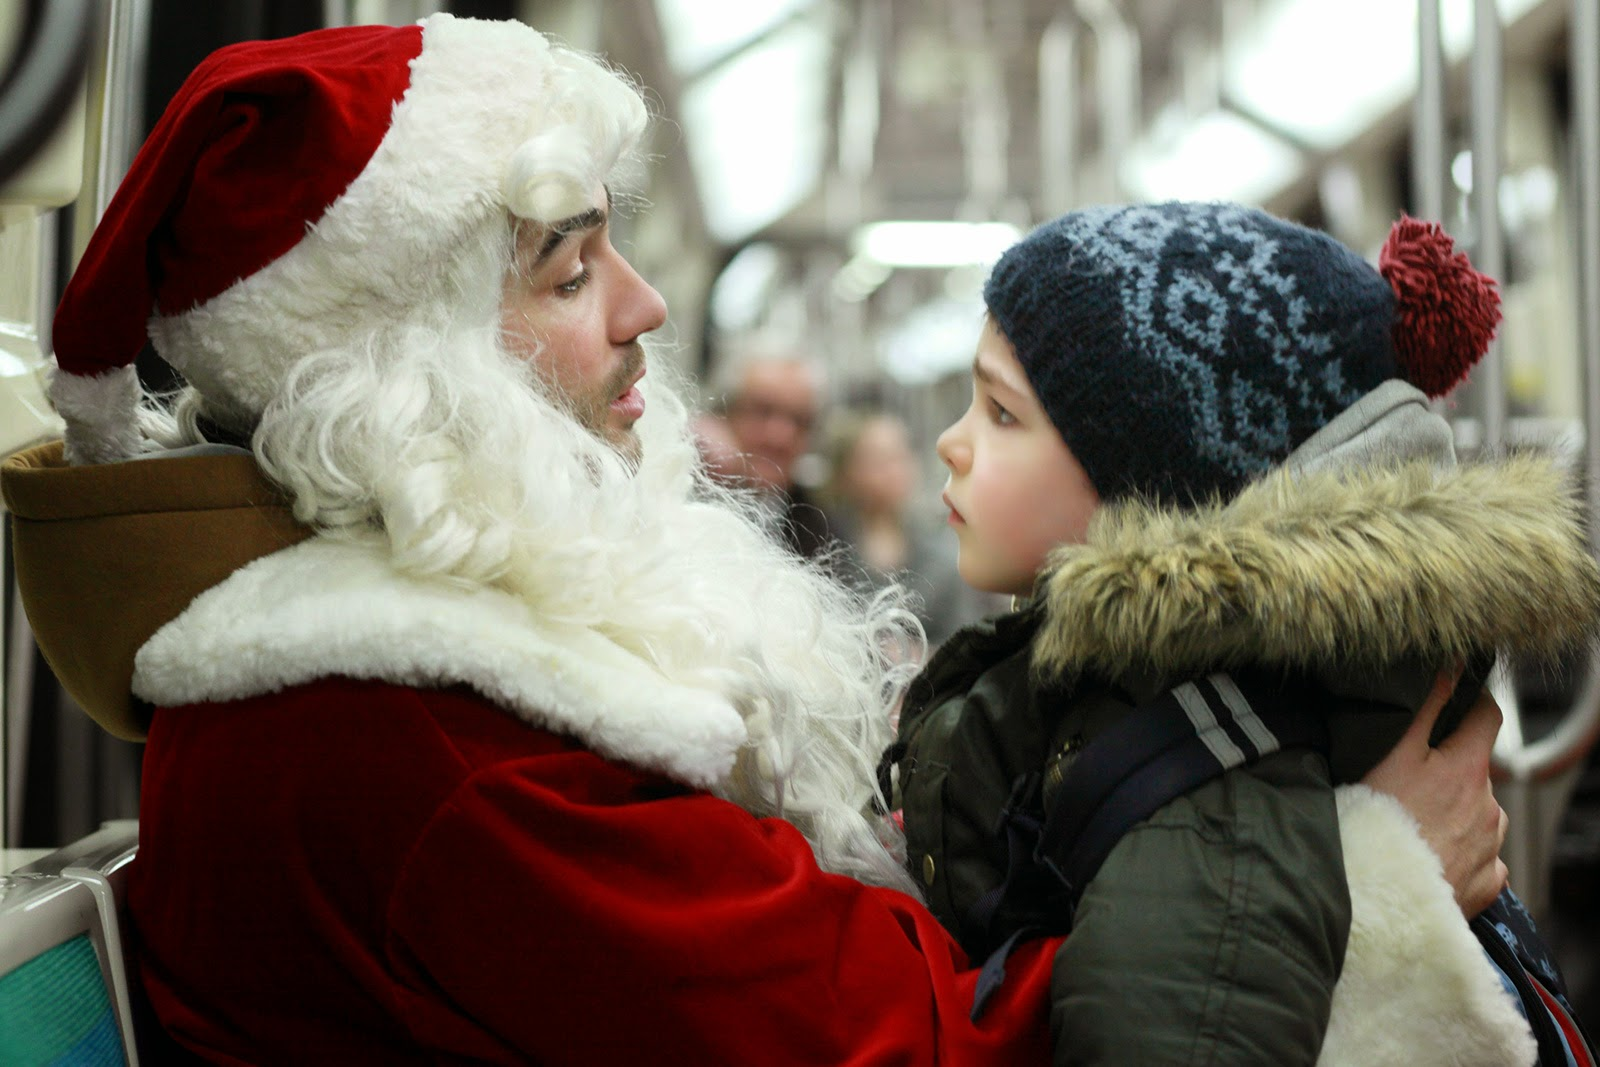 Best 2014 films to watch for Xmas